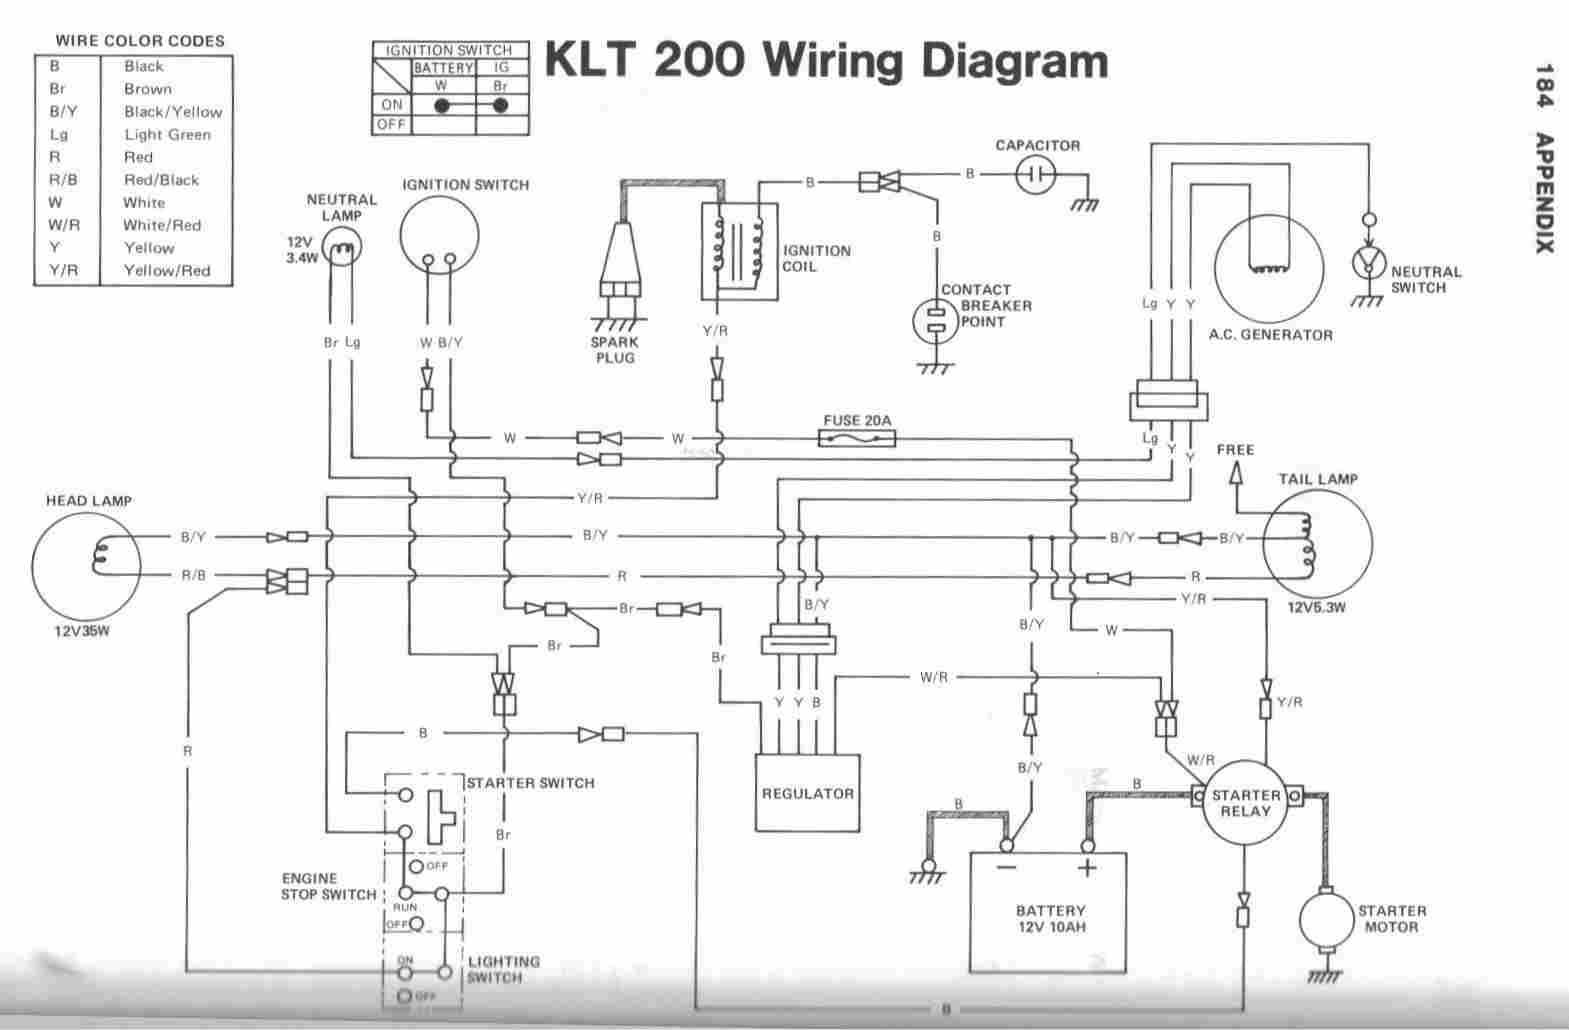 residential electrical wiring diagrams pdf easy routing cool electrical wiring diagram